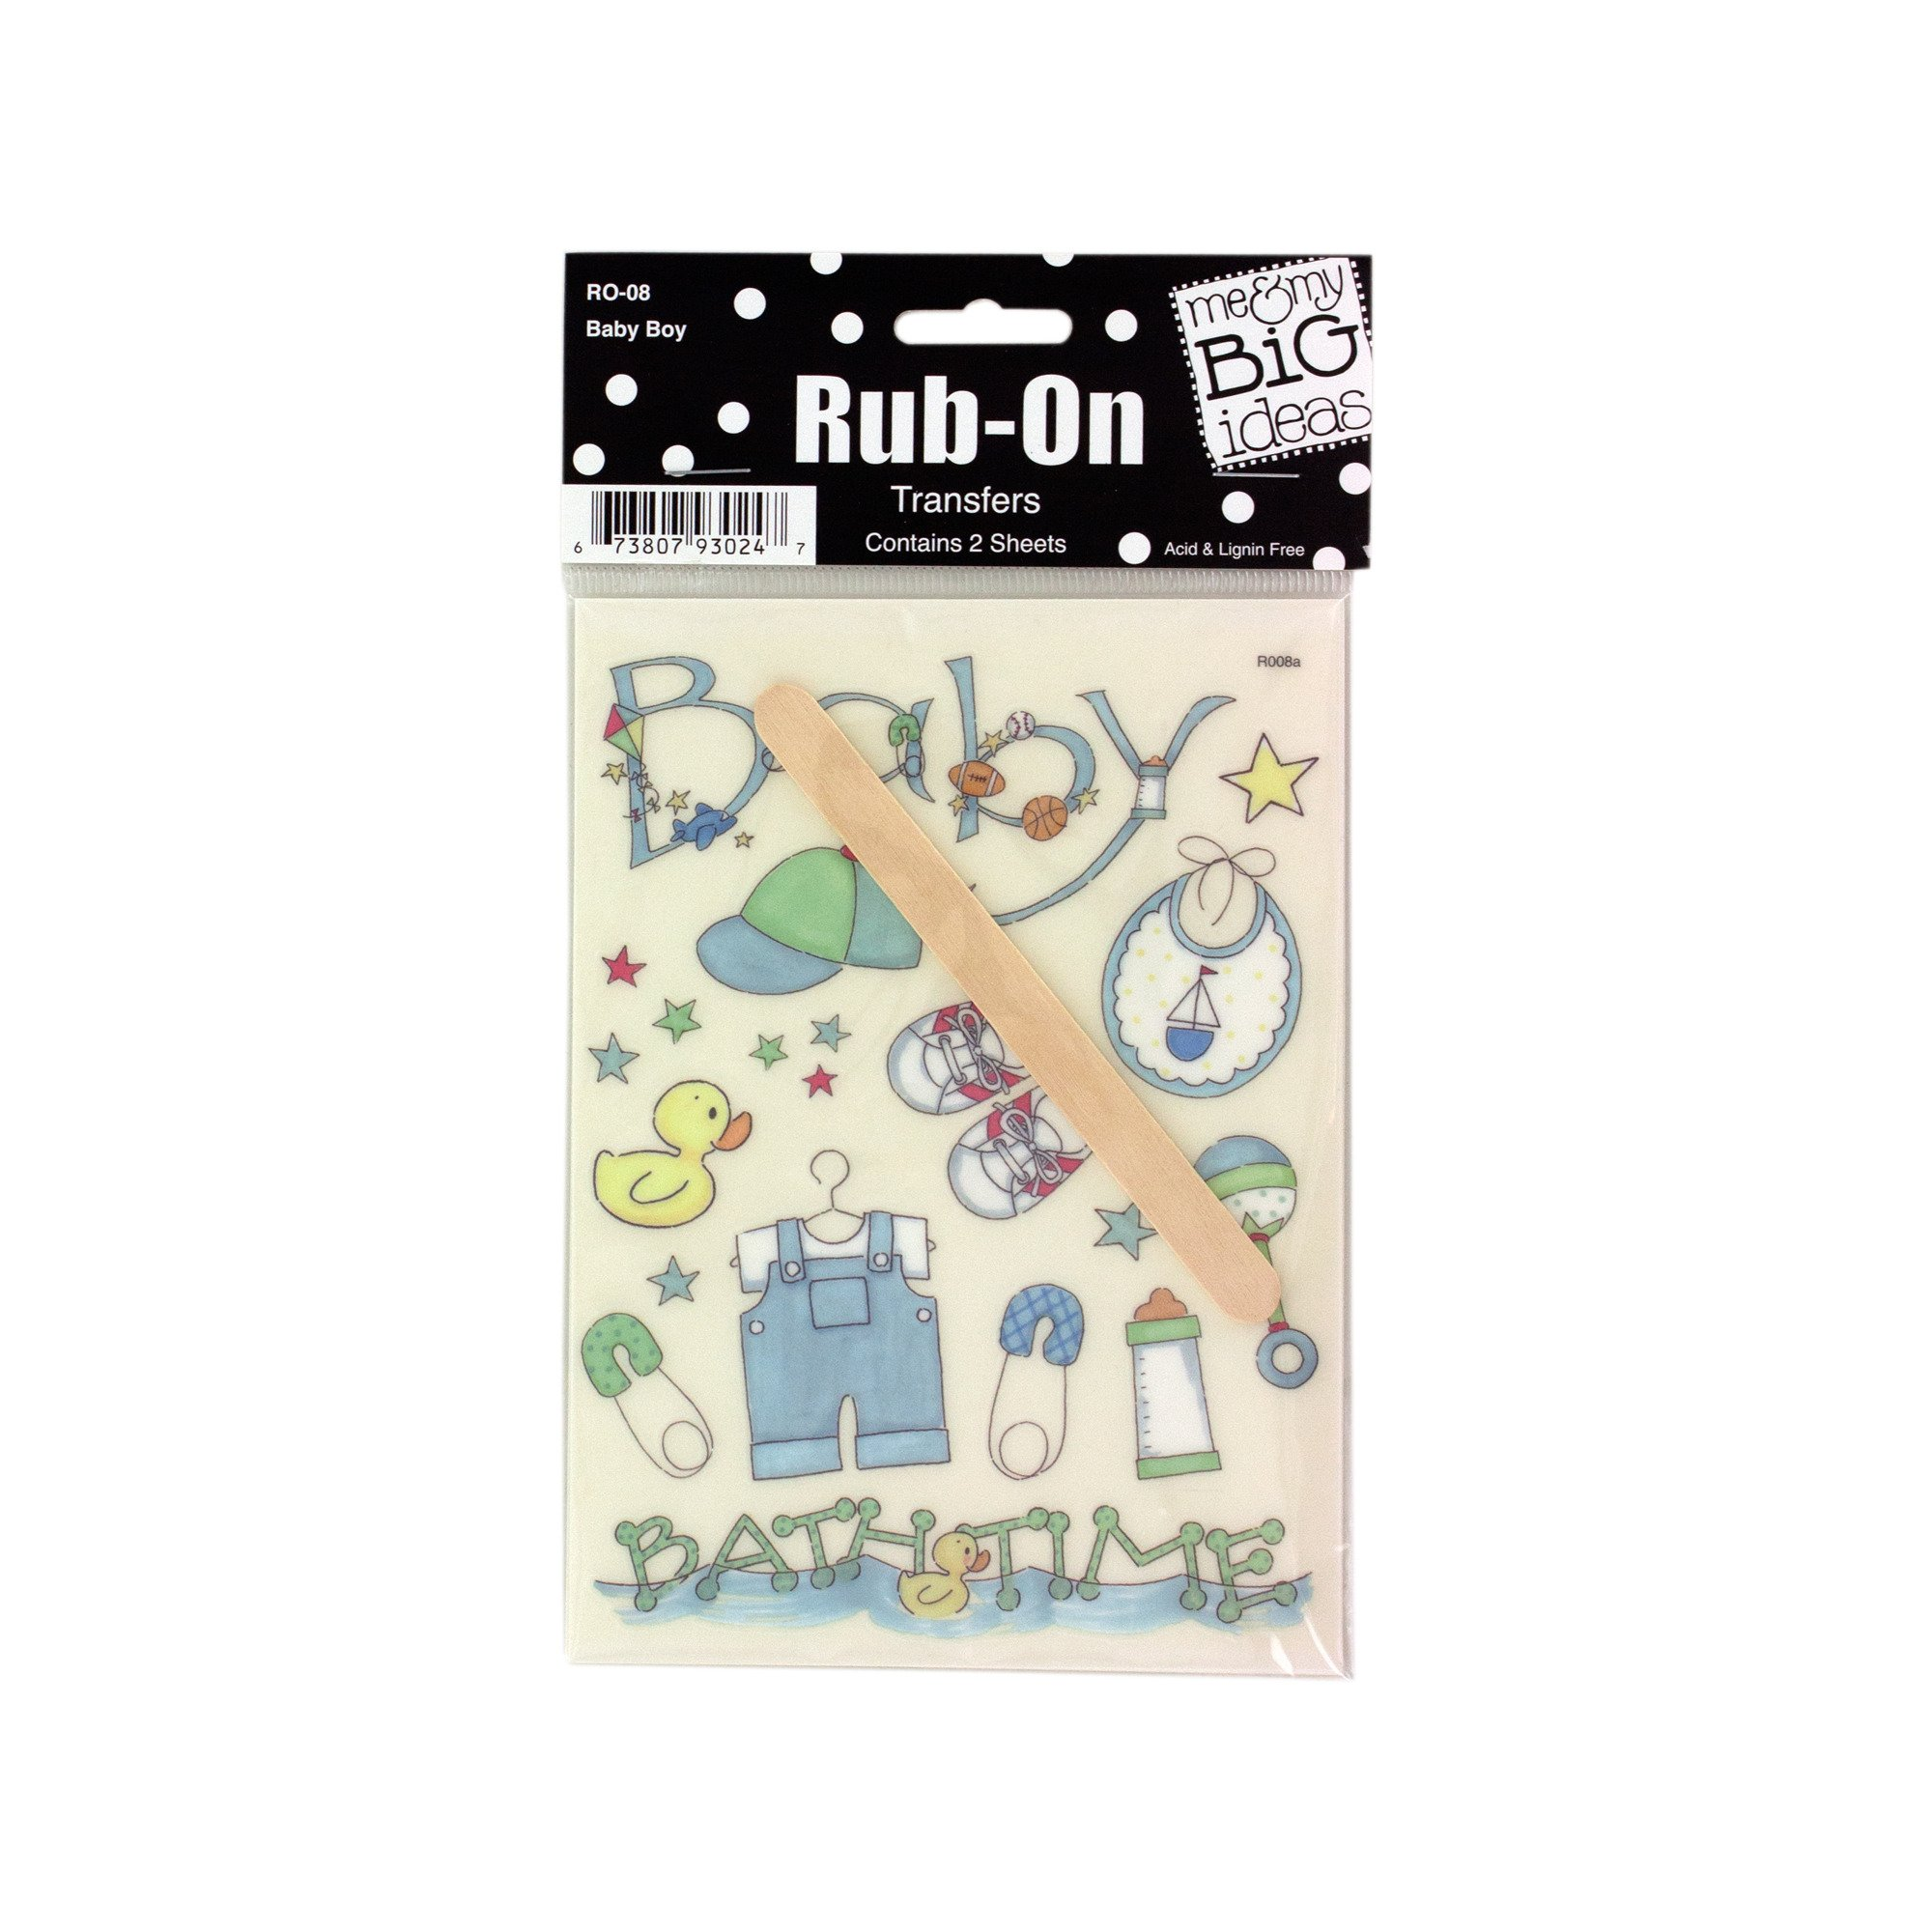 123-Wholesale - Set of 48 Baby Boy Designs Rub-On Transfers - Scrapbooking Rub-ons by 123-Wholesale